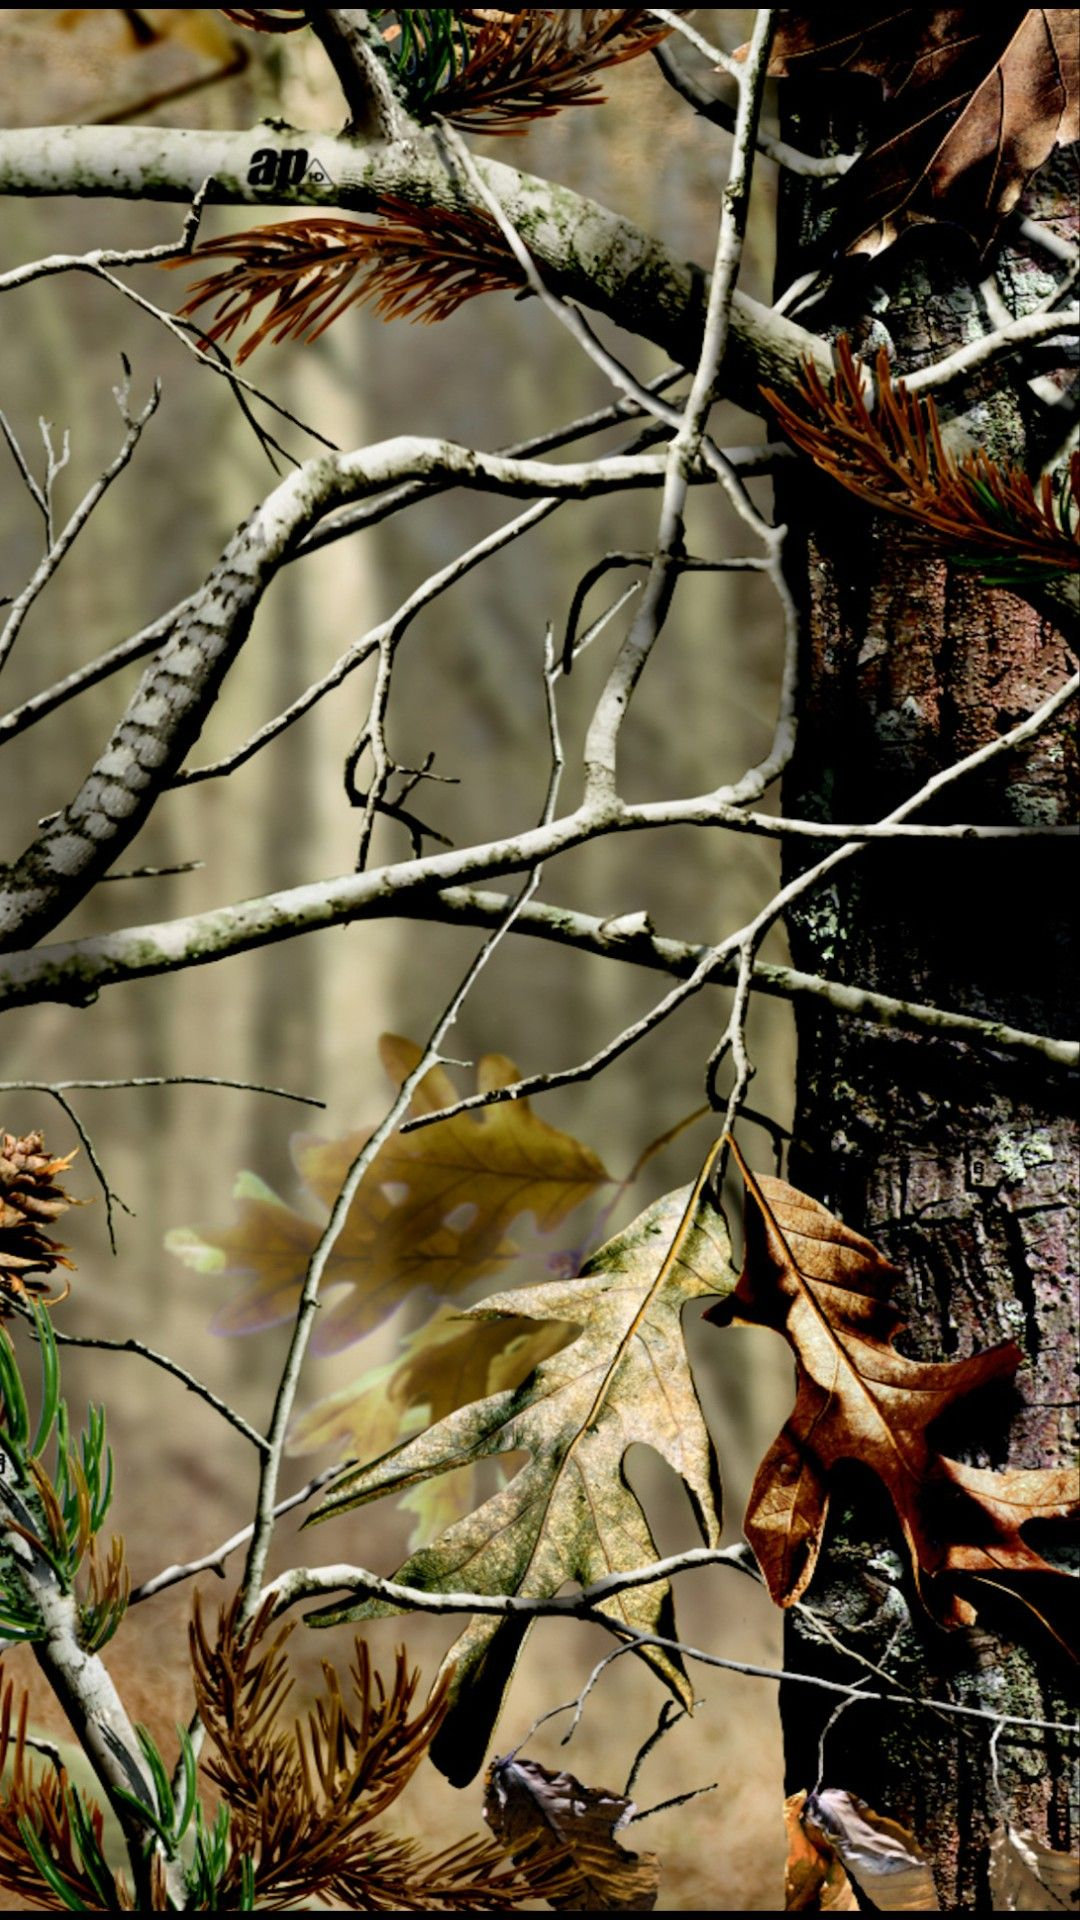 Pin By Kimberly Haller On Phone Background Camo Wallpaper Nature Wallpaper Tree Branch Decal